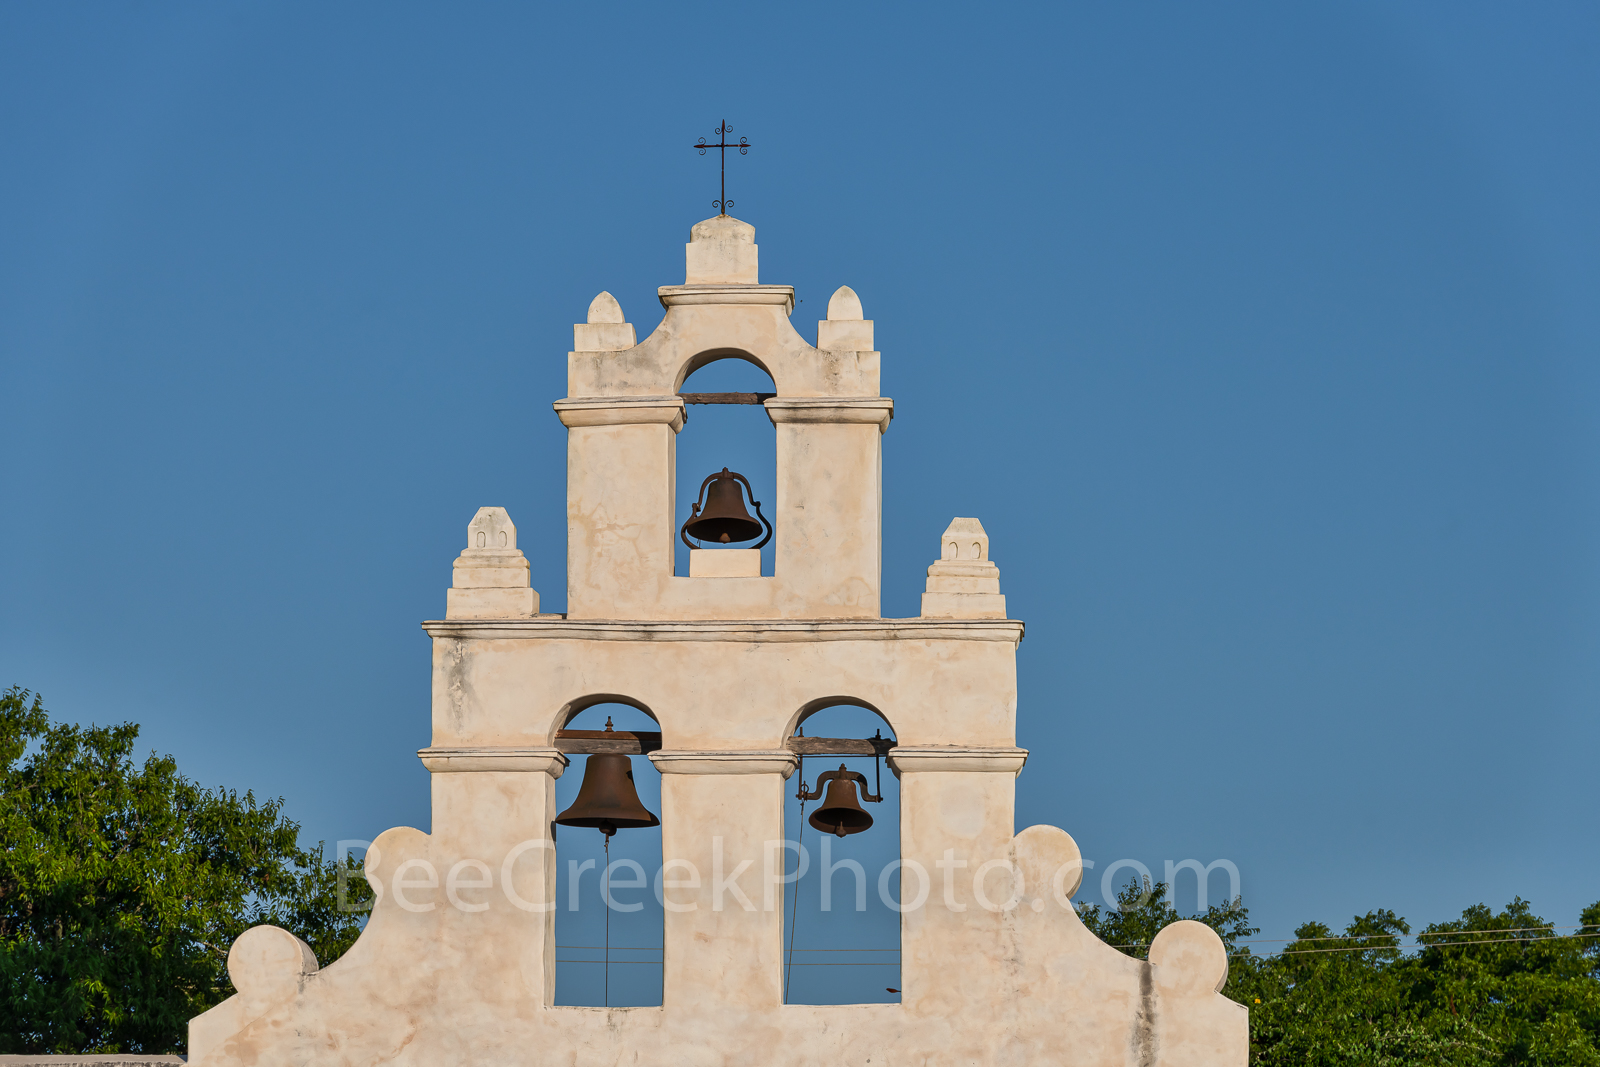 Mission San Juan, bells, San Antonio Missions National Historical Park,  San Antonio,  Texas, church,  landmark, , photo